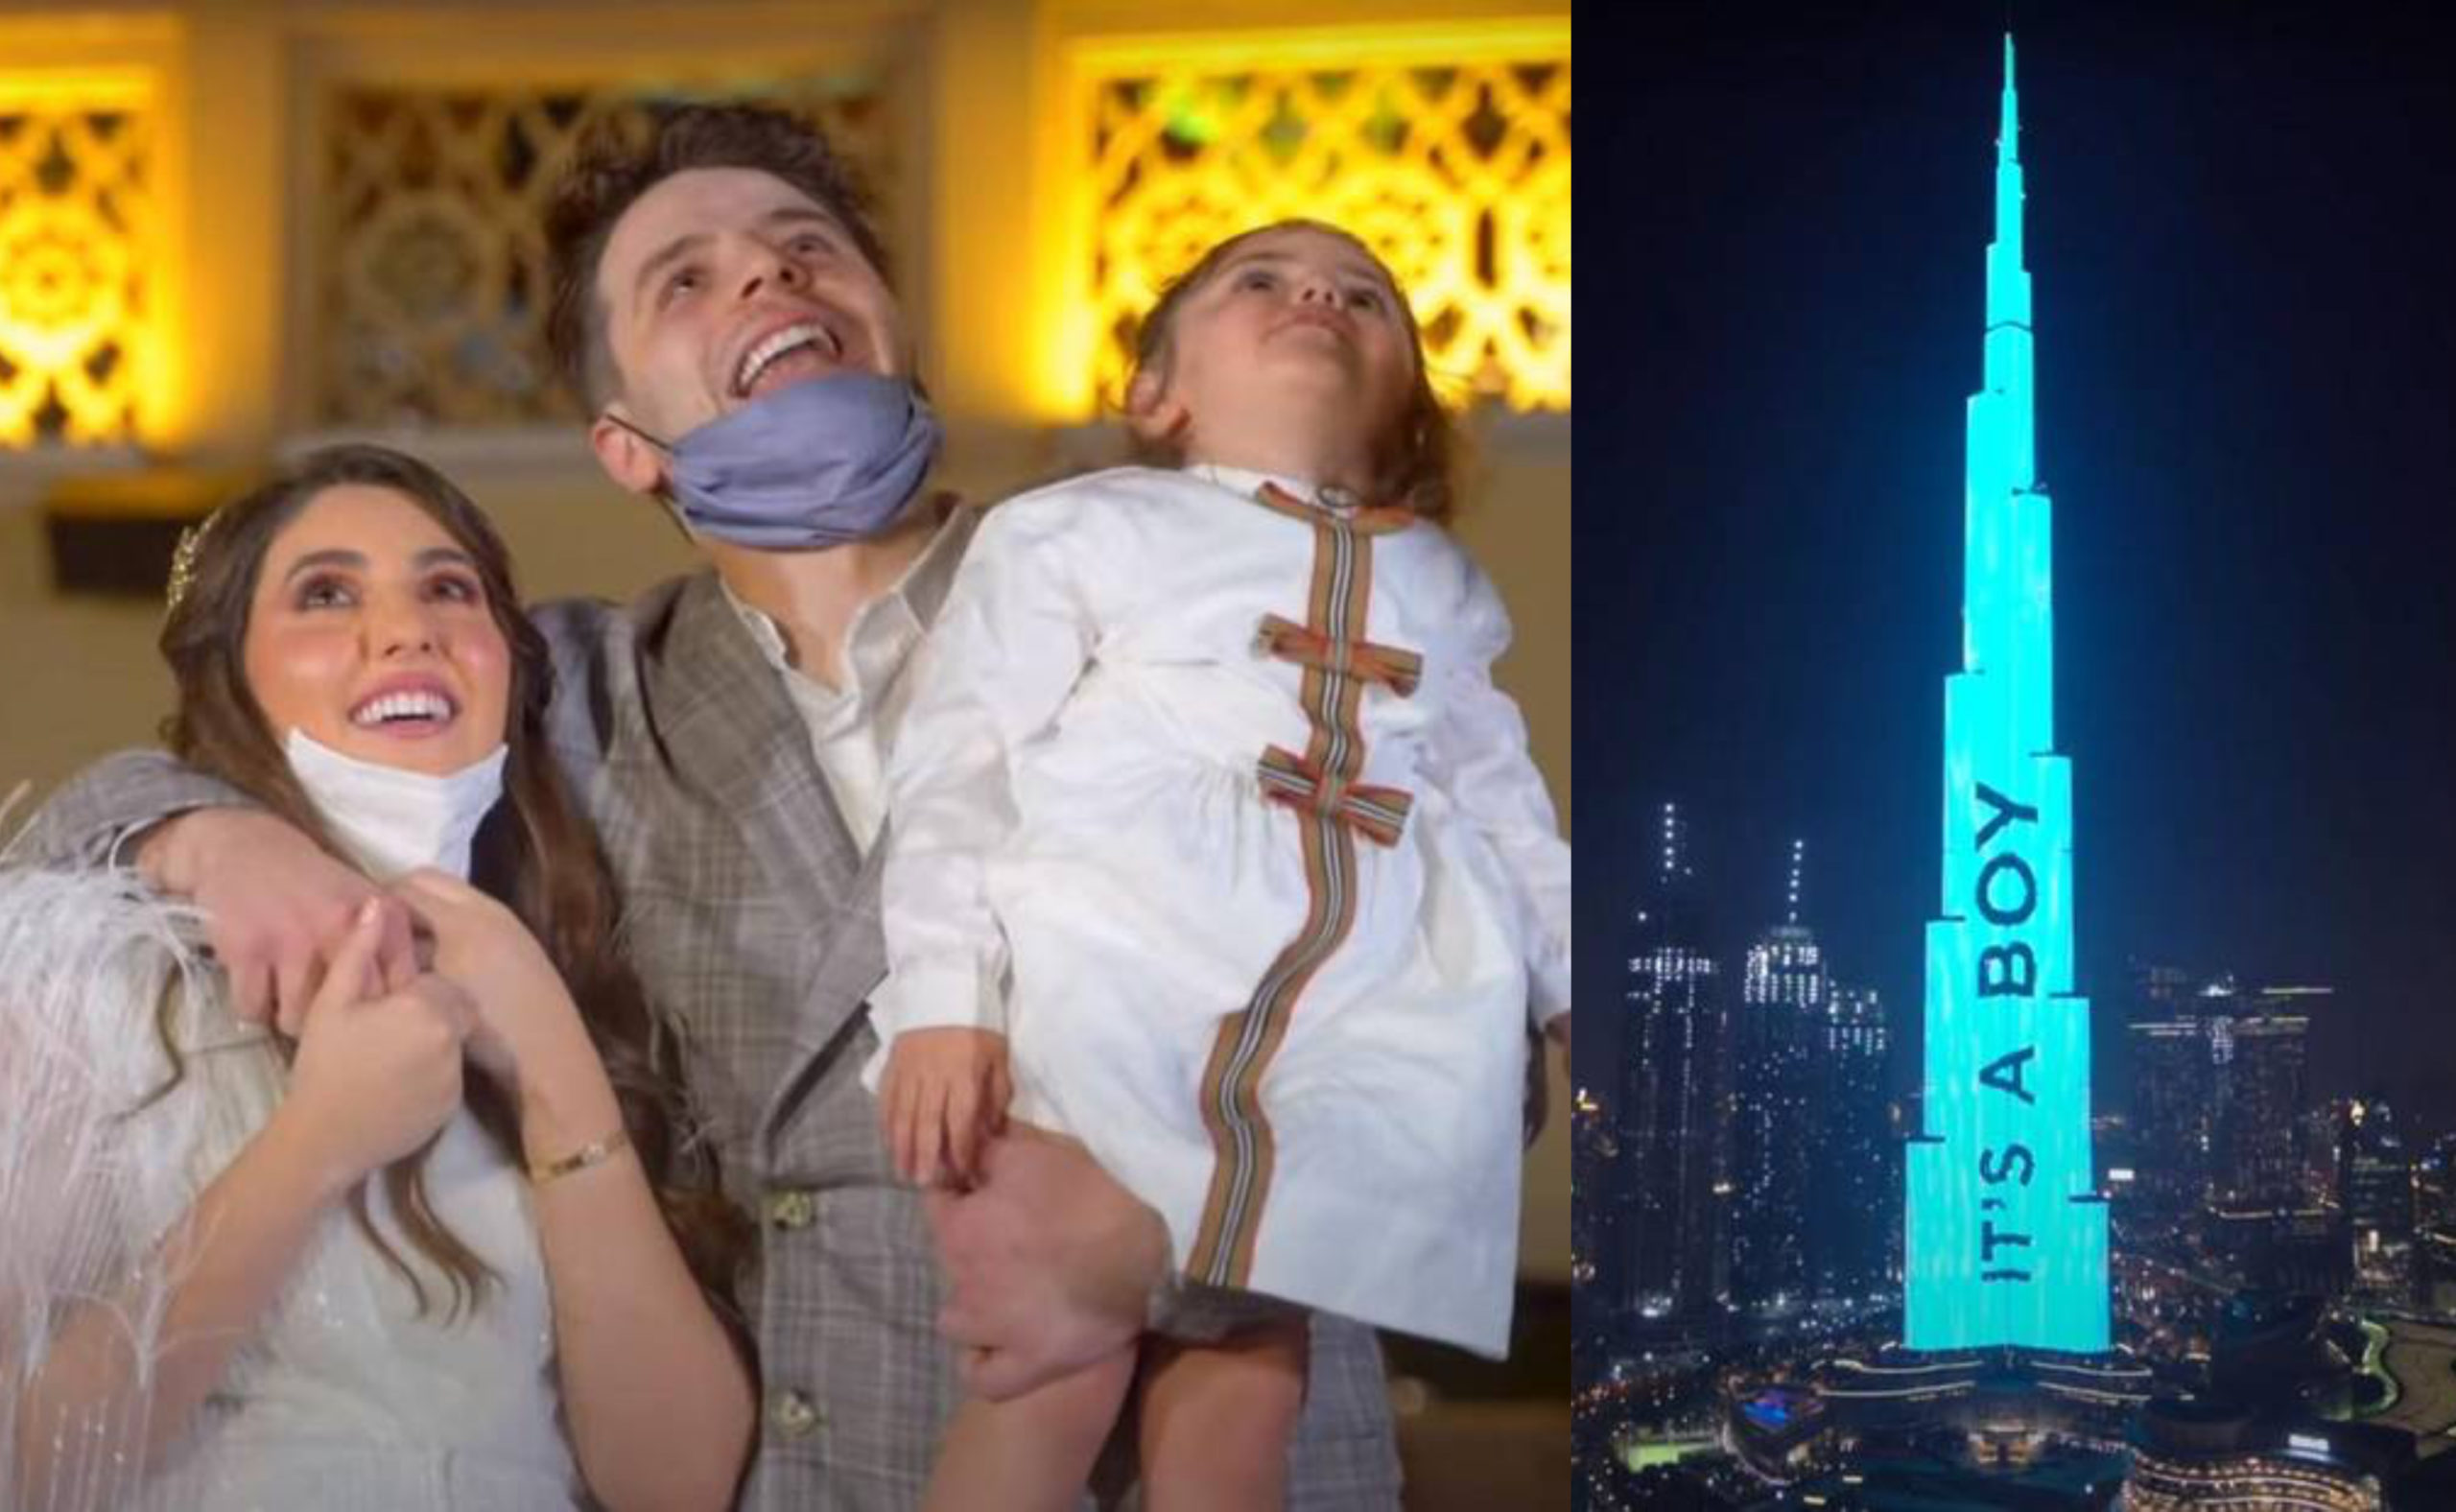 Anas and Asala Marwah staged an elaborate gender reveal party in Dubai, splashing the gender of their unborn baby onto the Burj Khalifa. (Screen captures via YouTube)